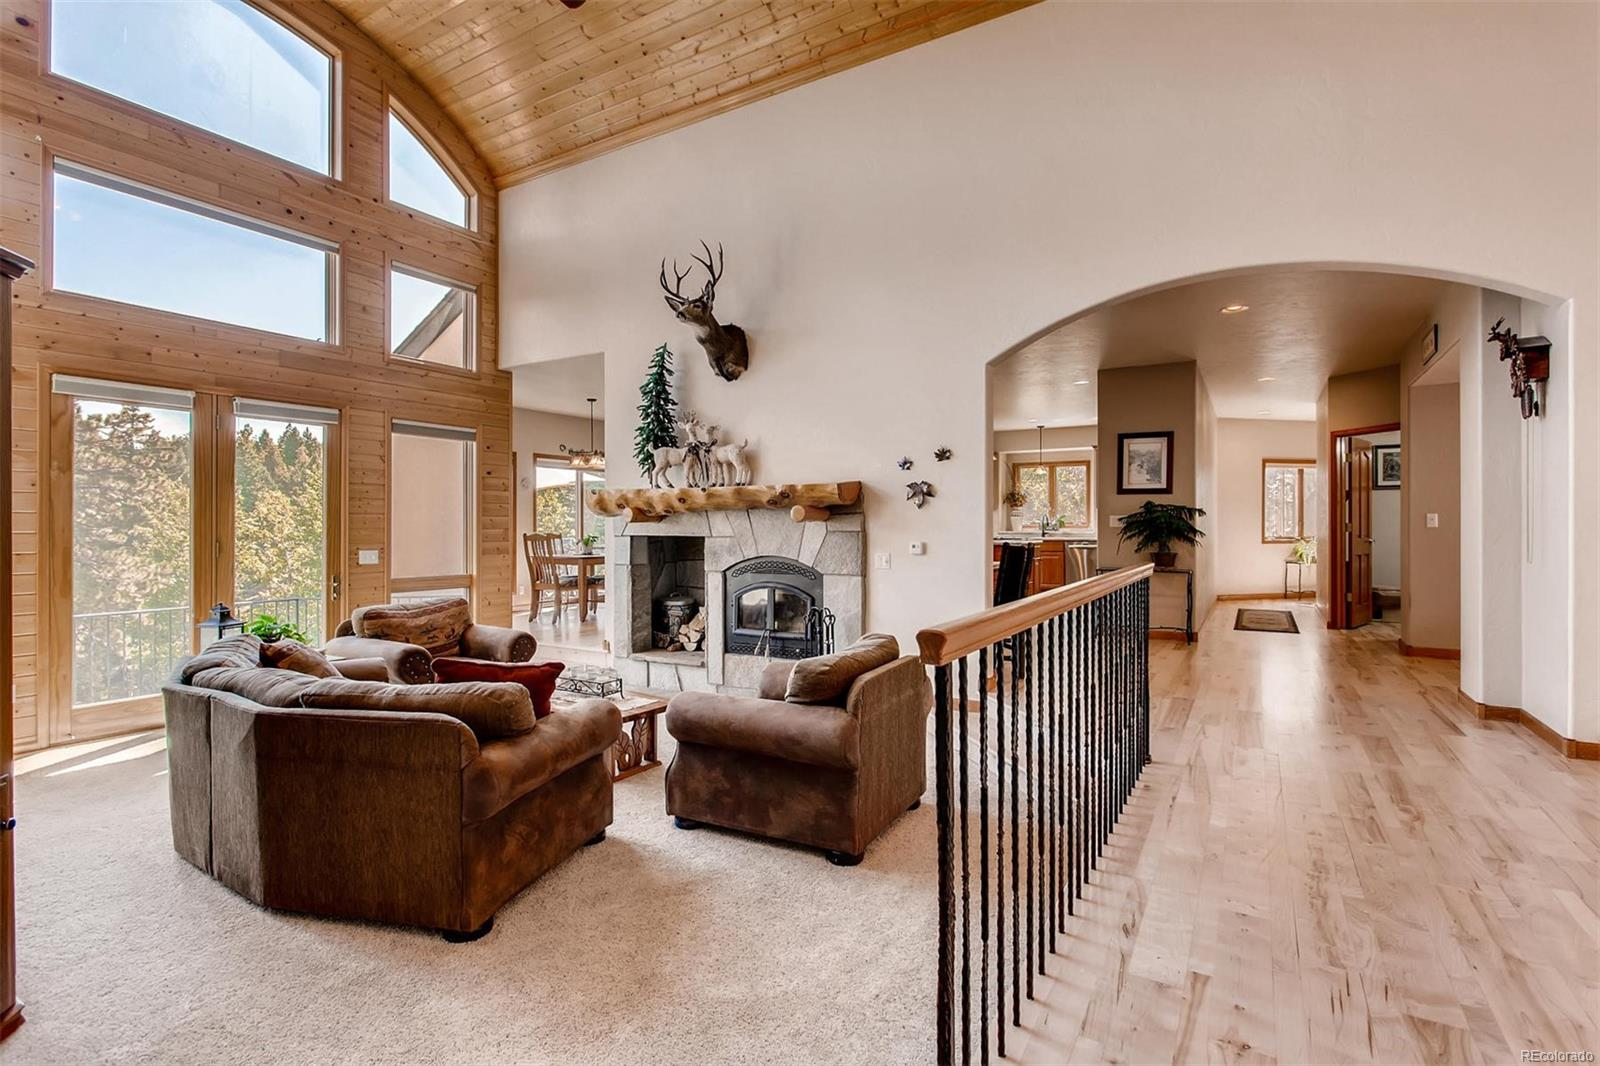 Just in front of the entry is the living room - with the wood burning fireplace